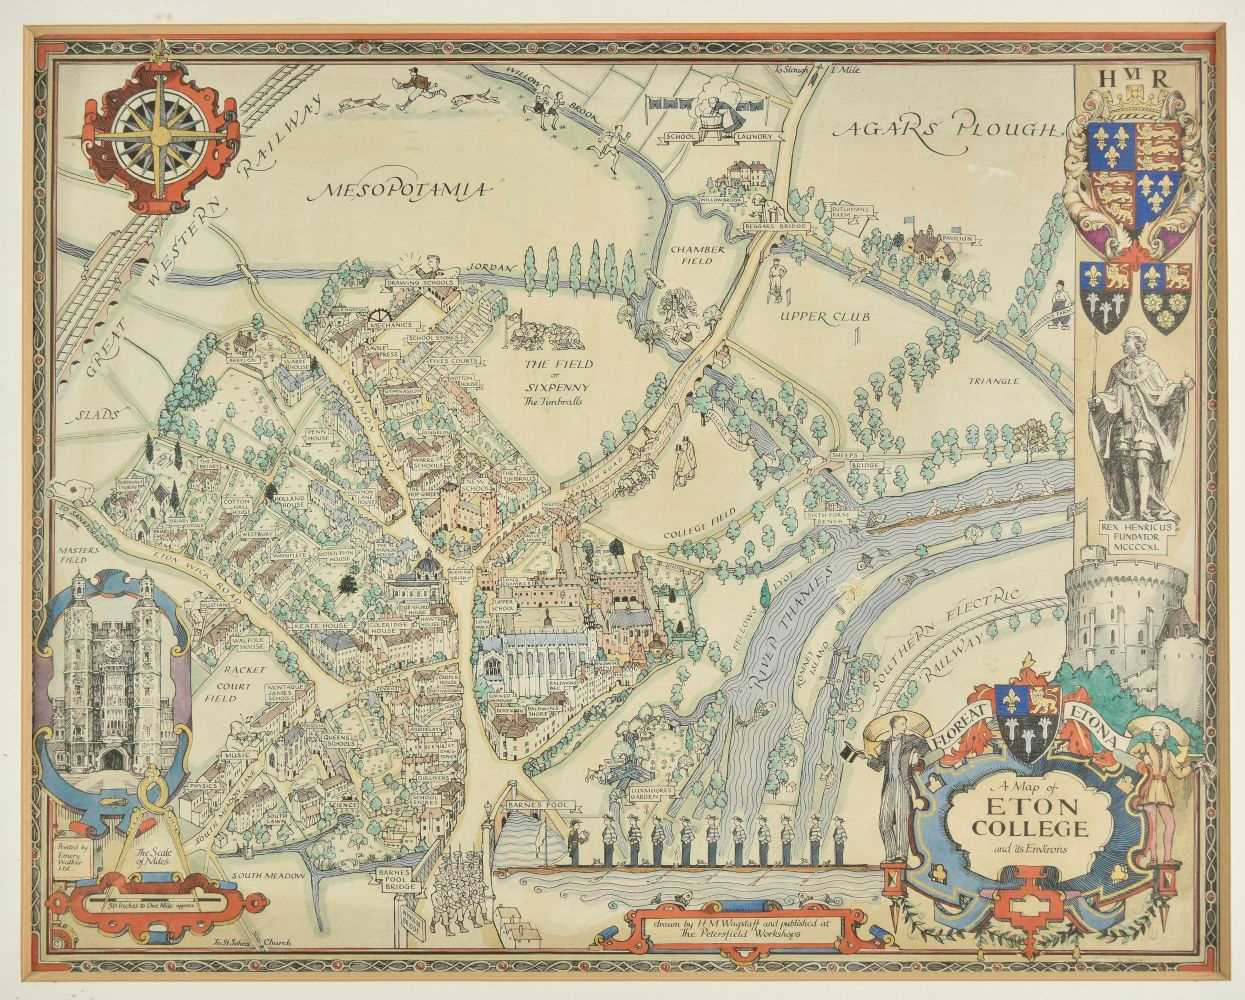 Lot 37-Eton. Wagstaff (H. M.), A Map of Eton College and its Environs, circa 1948